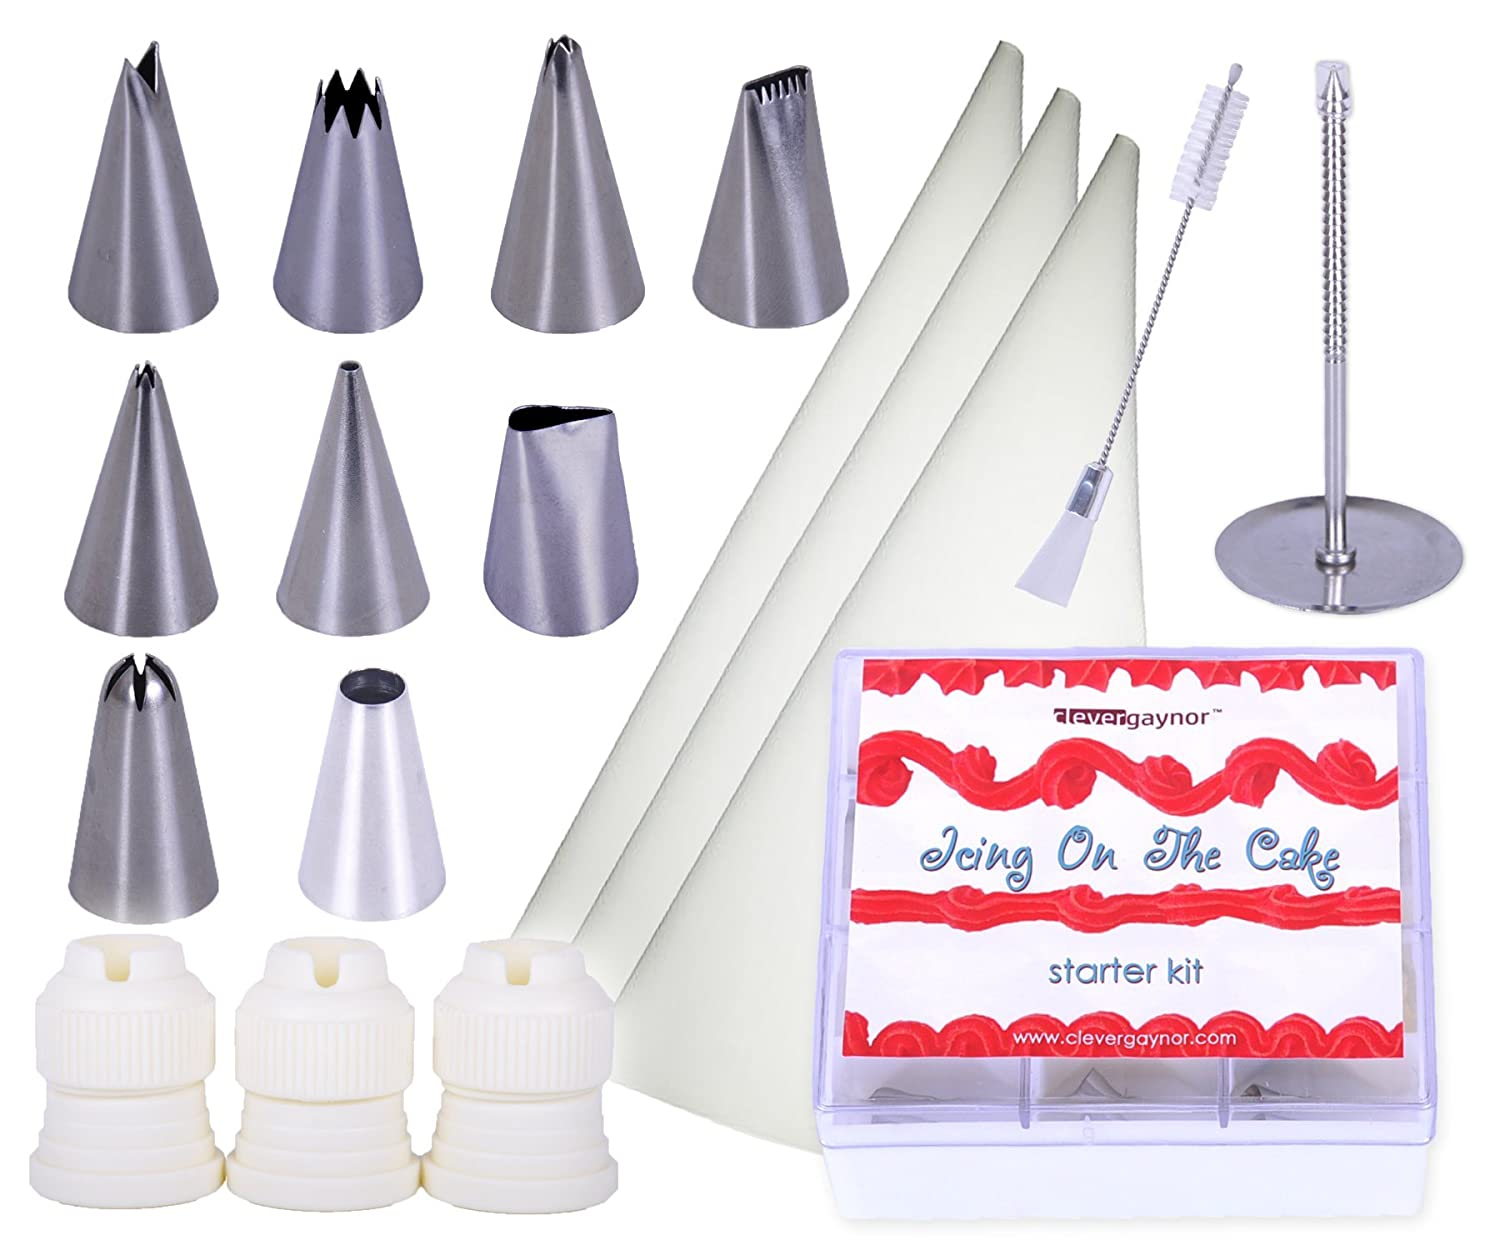 Cake Decorating Kit with Supplies - Edible Decor - Complete with Icing Bags and Cleaning Brush - Perfect to Add Icing To Cakes, Cupcakes, Cookies and Pastries - Decorate Like a Professional clevergaynor COMIN18JU019110